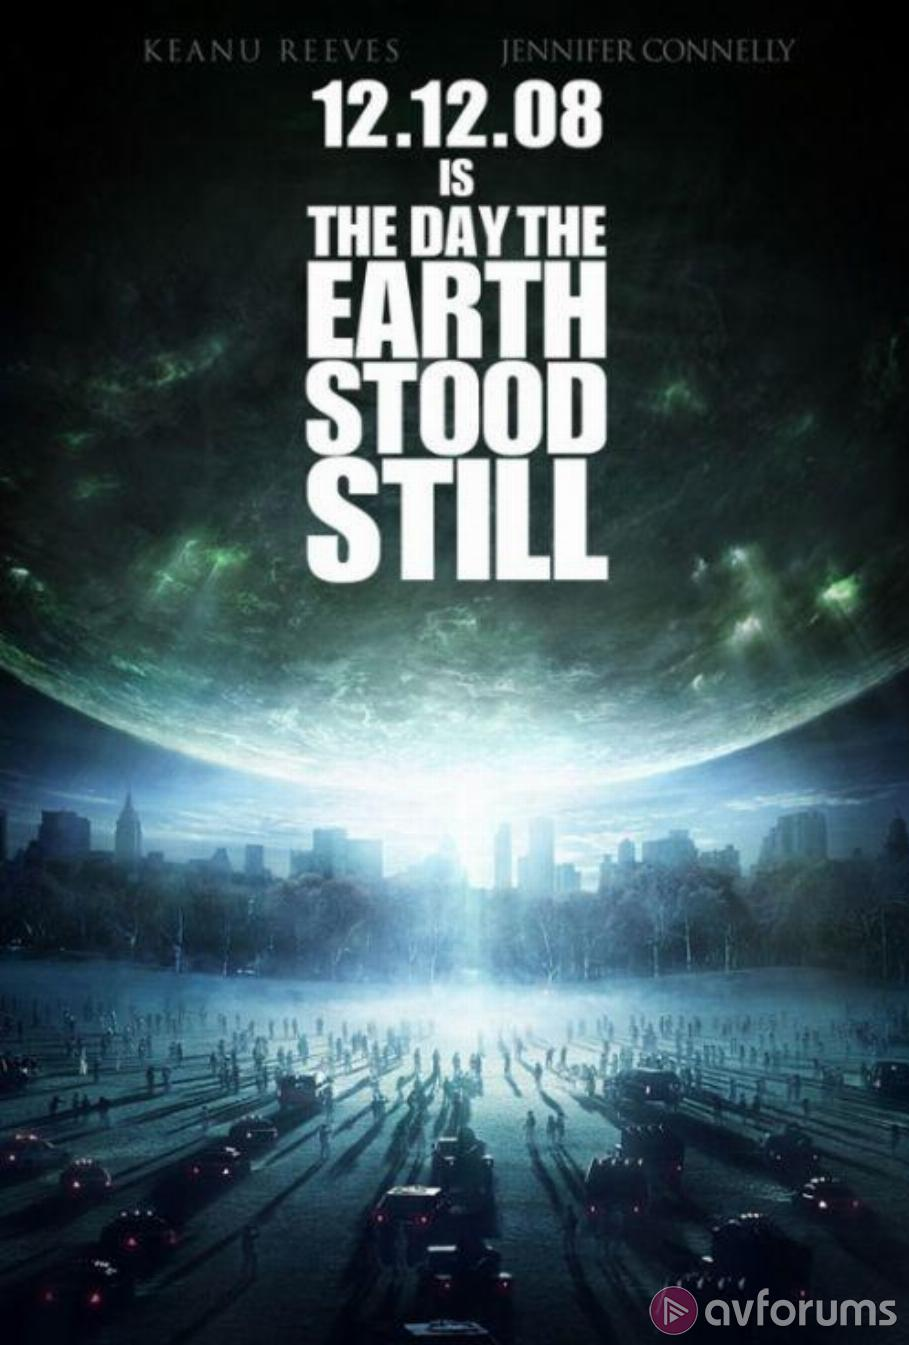 The Day the Earth Stood Still (2008) Review